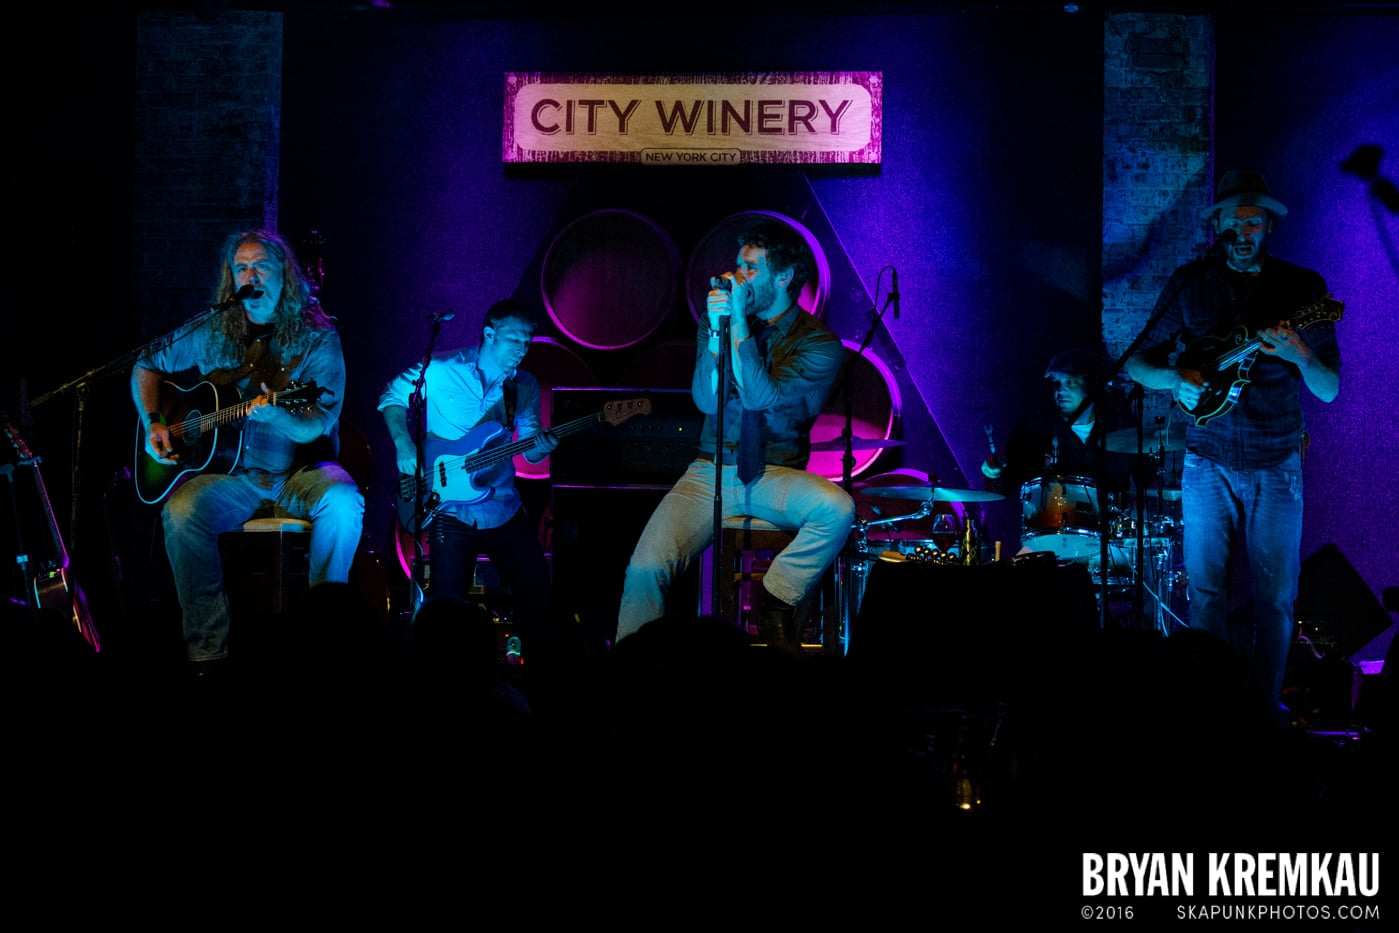 Carbon Leaf @ City Winery, NYC - July 11th 2013 - Bryan Kremkau (28)